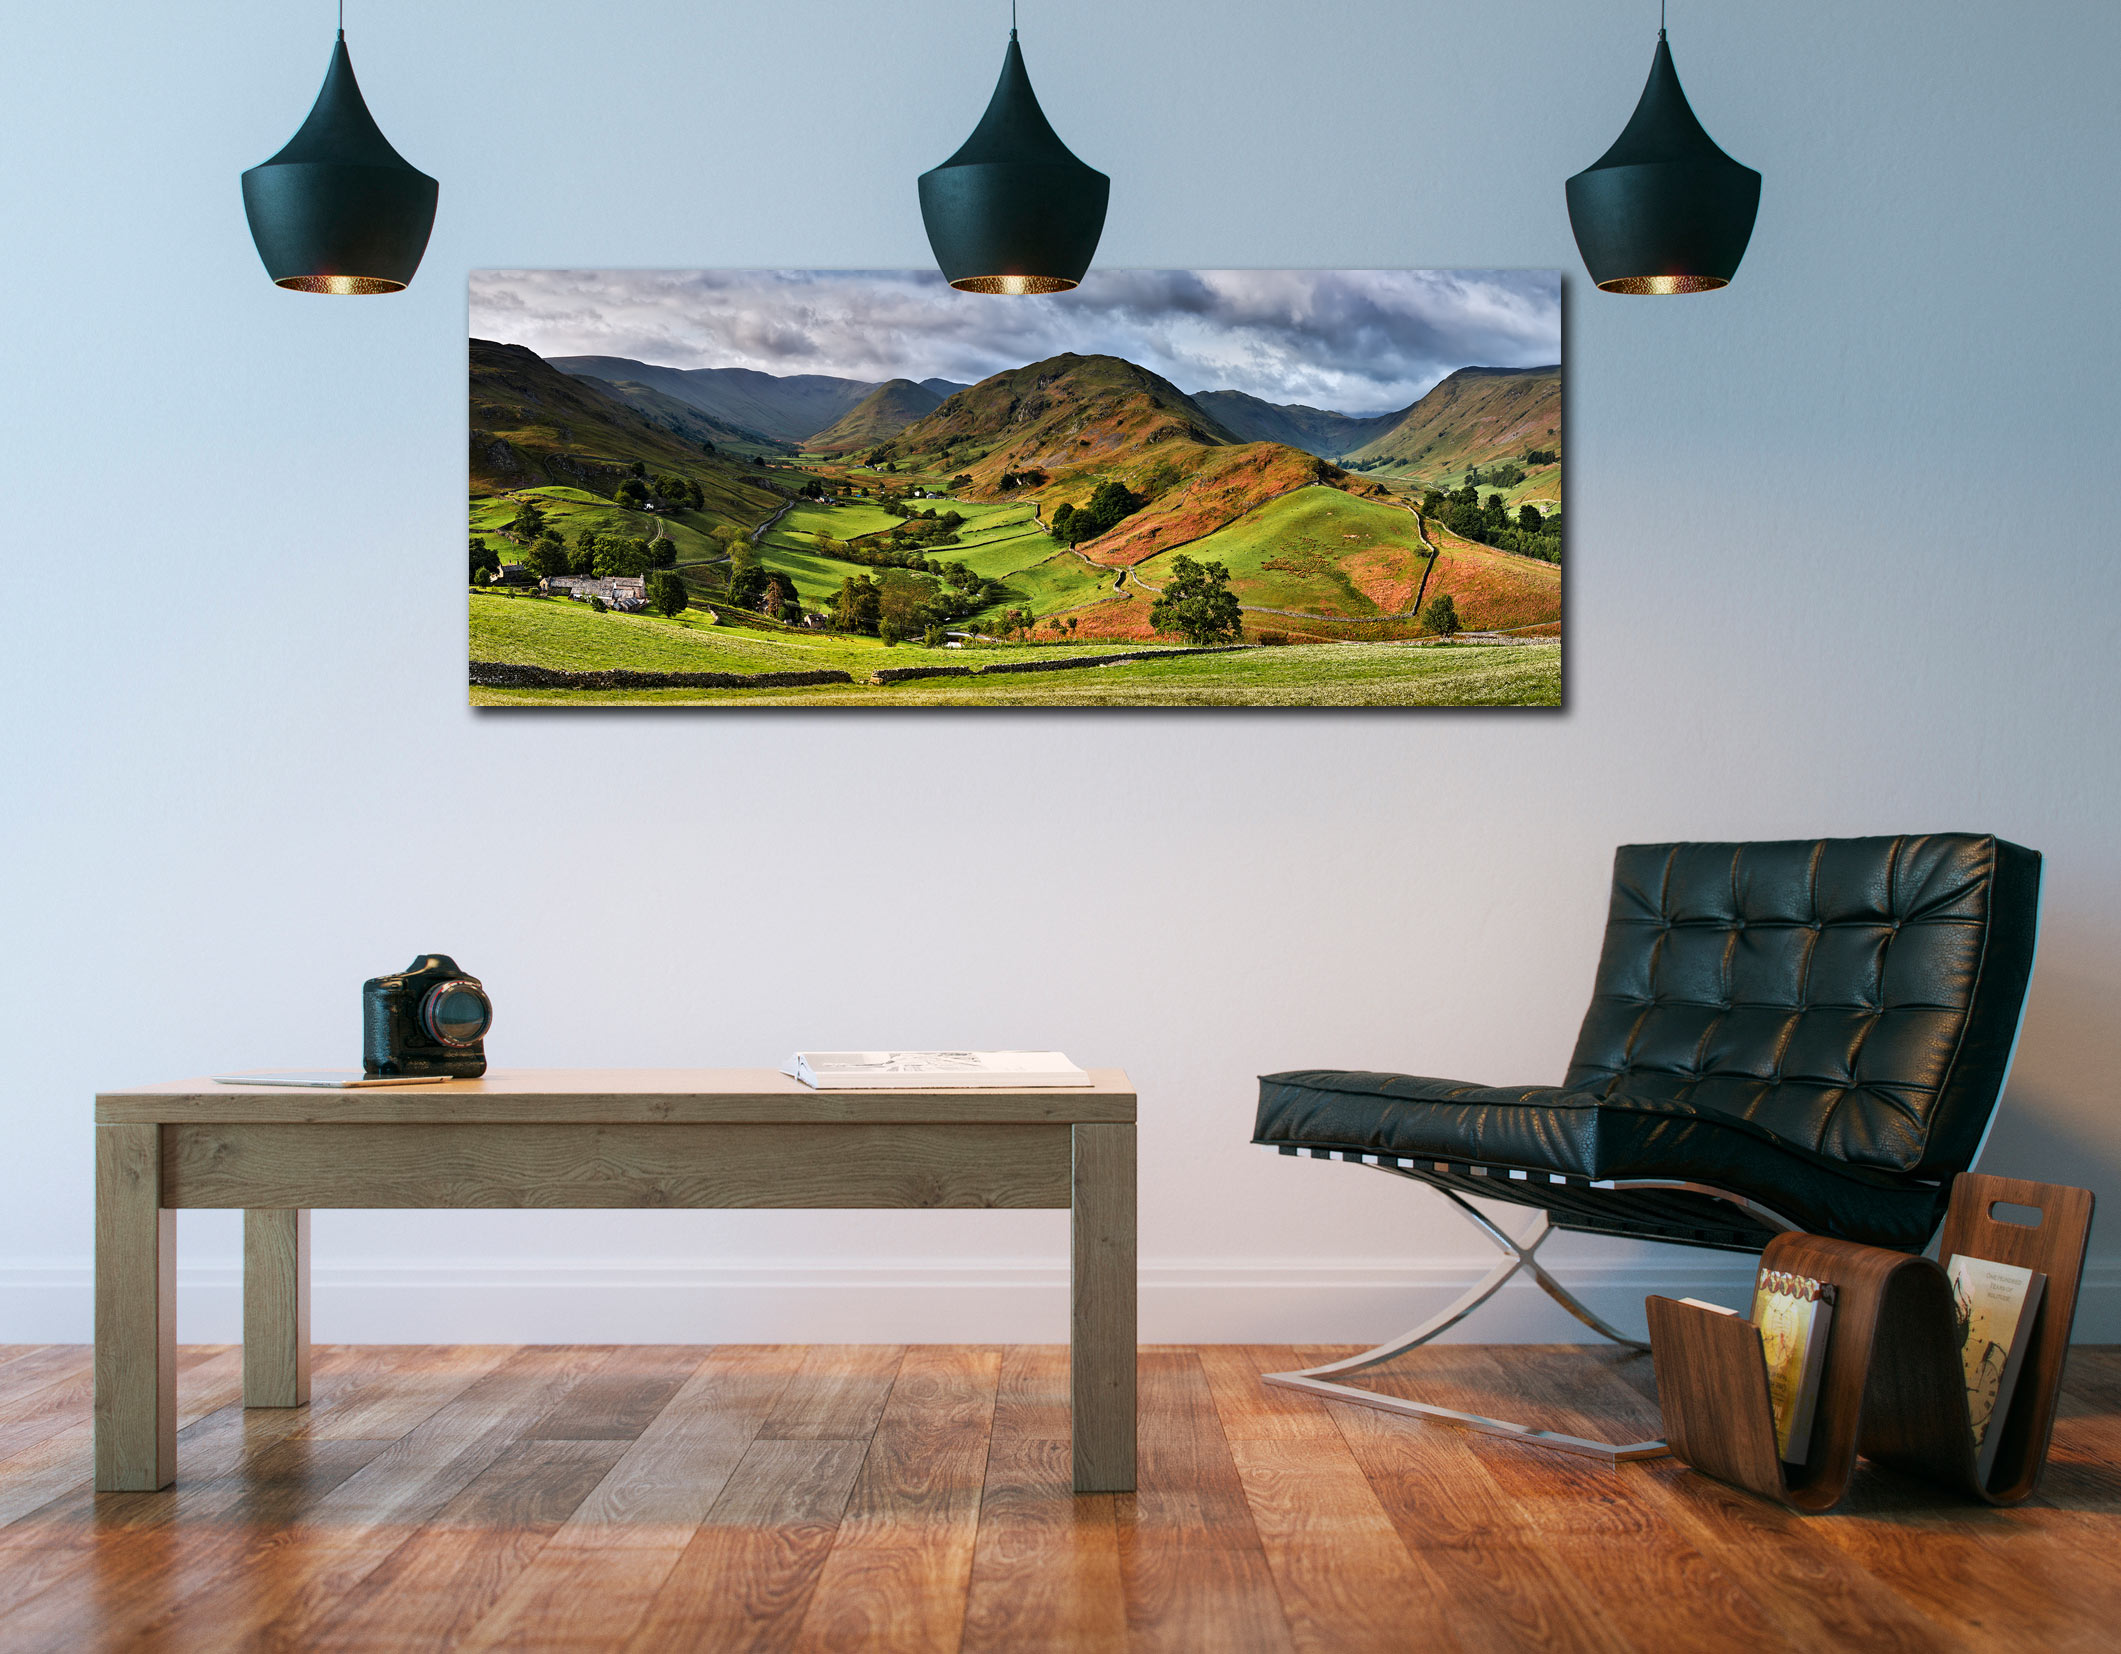 The Martindale Valleys - Print Aluminium Backing With Acrylic Glazing on Wall